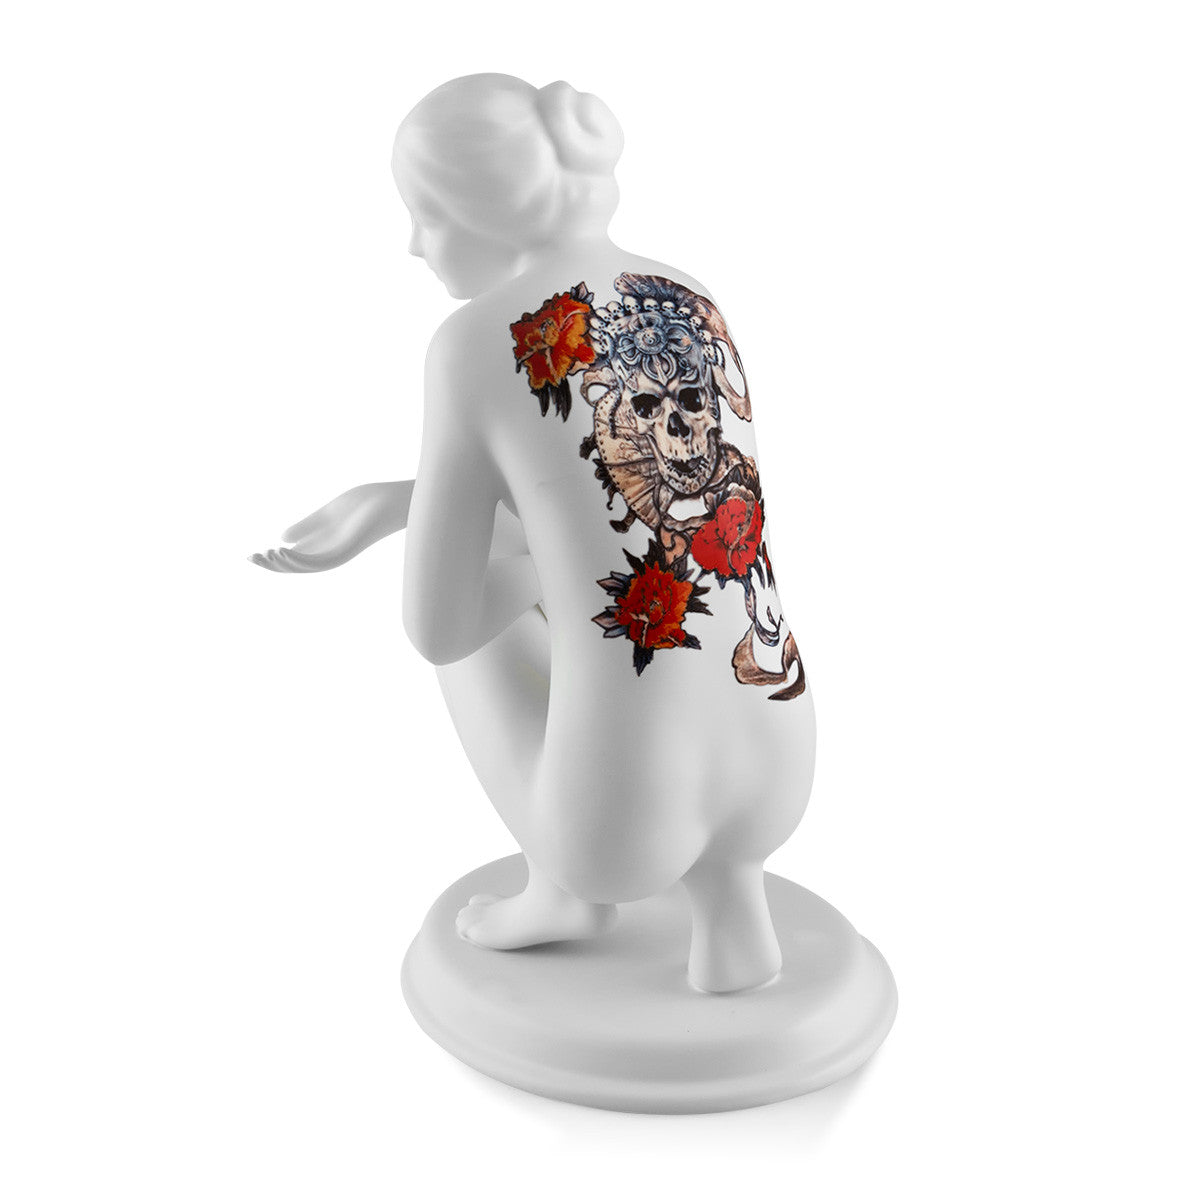 Ceramic Greek statue with skull tattoo-Porcelain sculptures